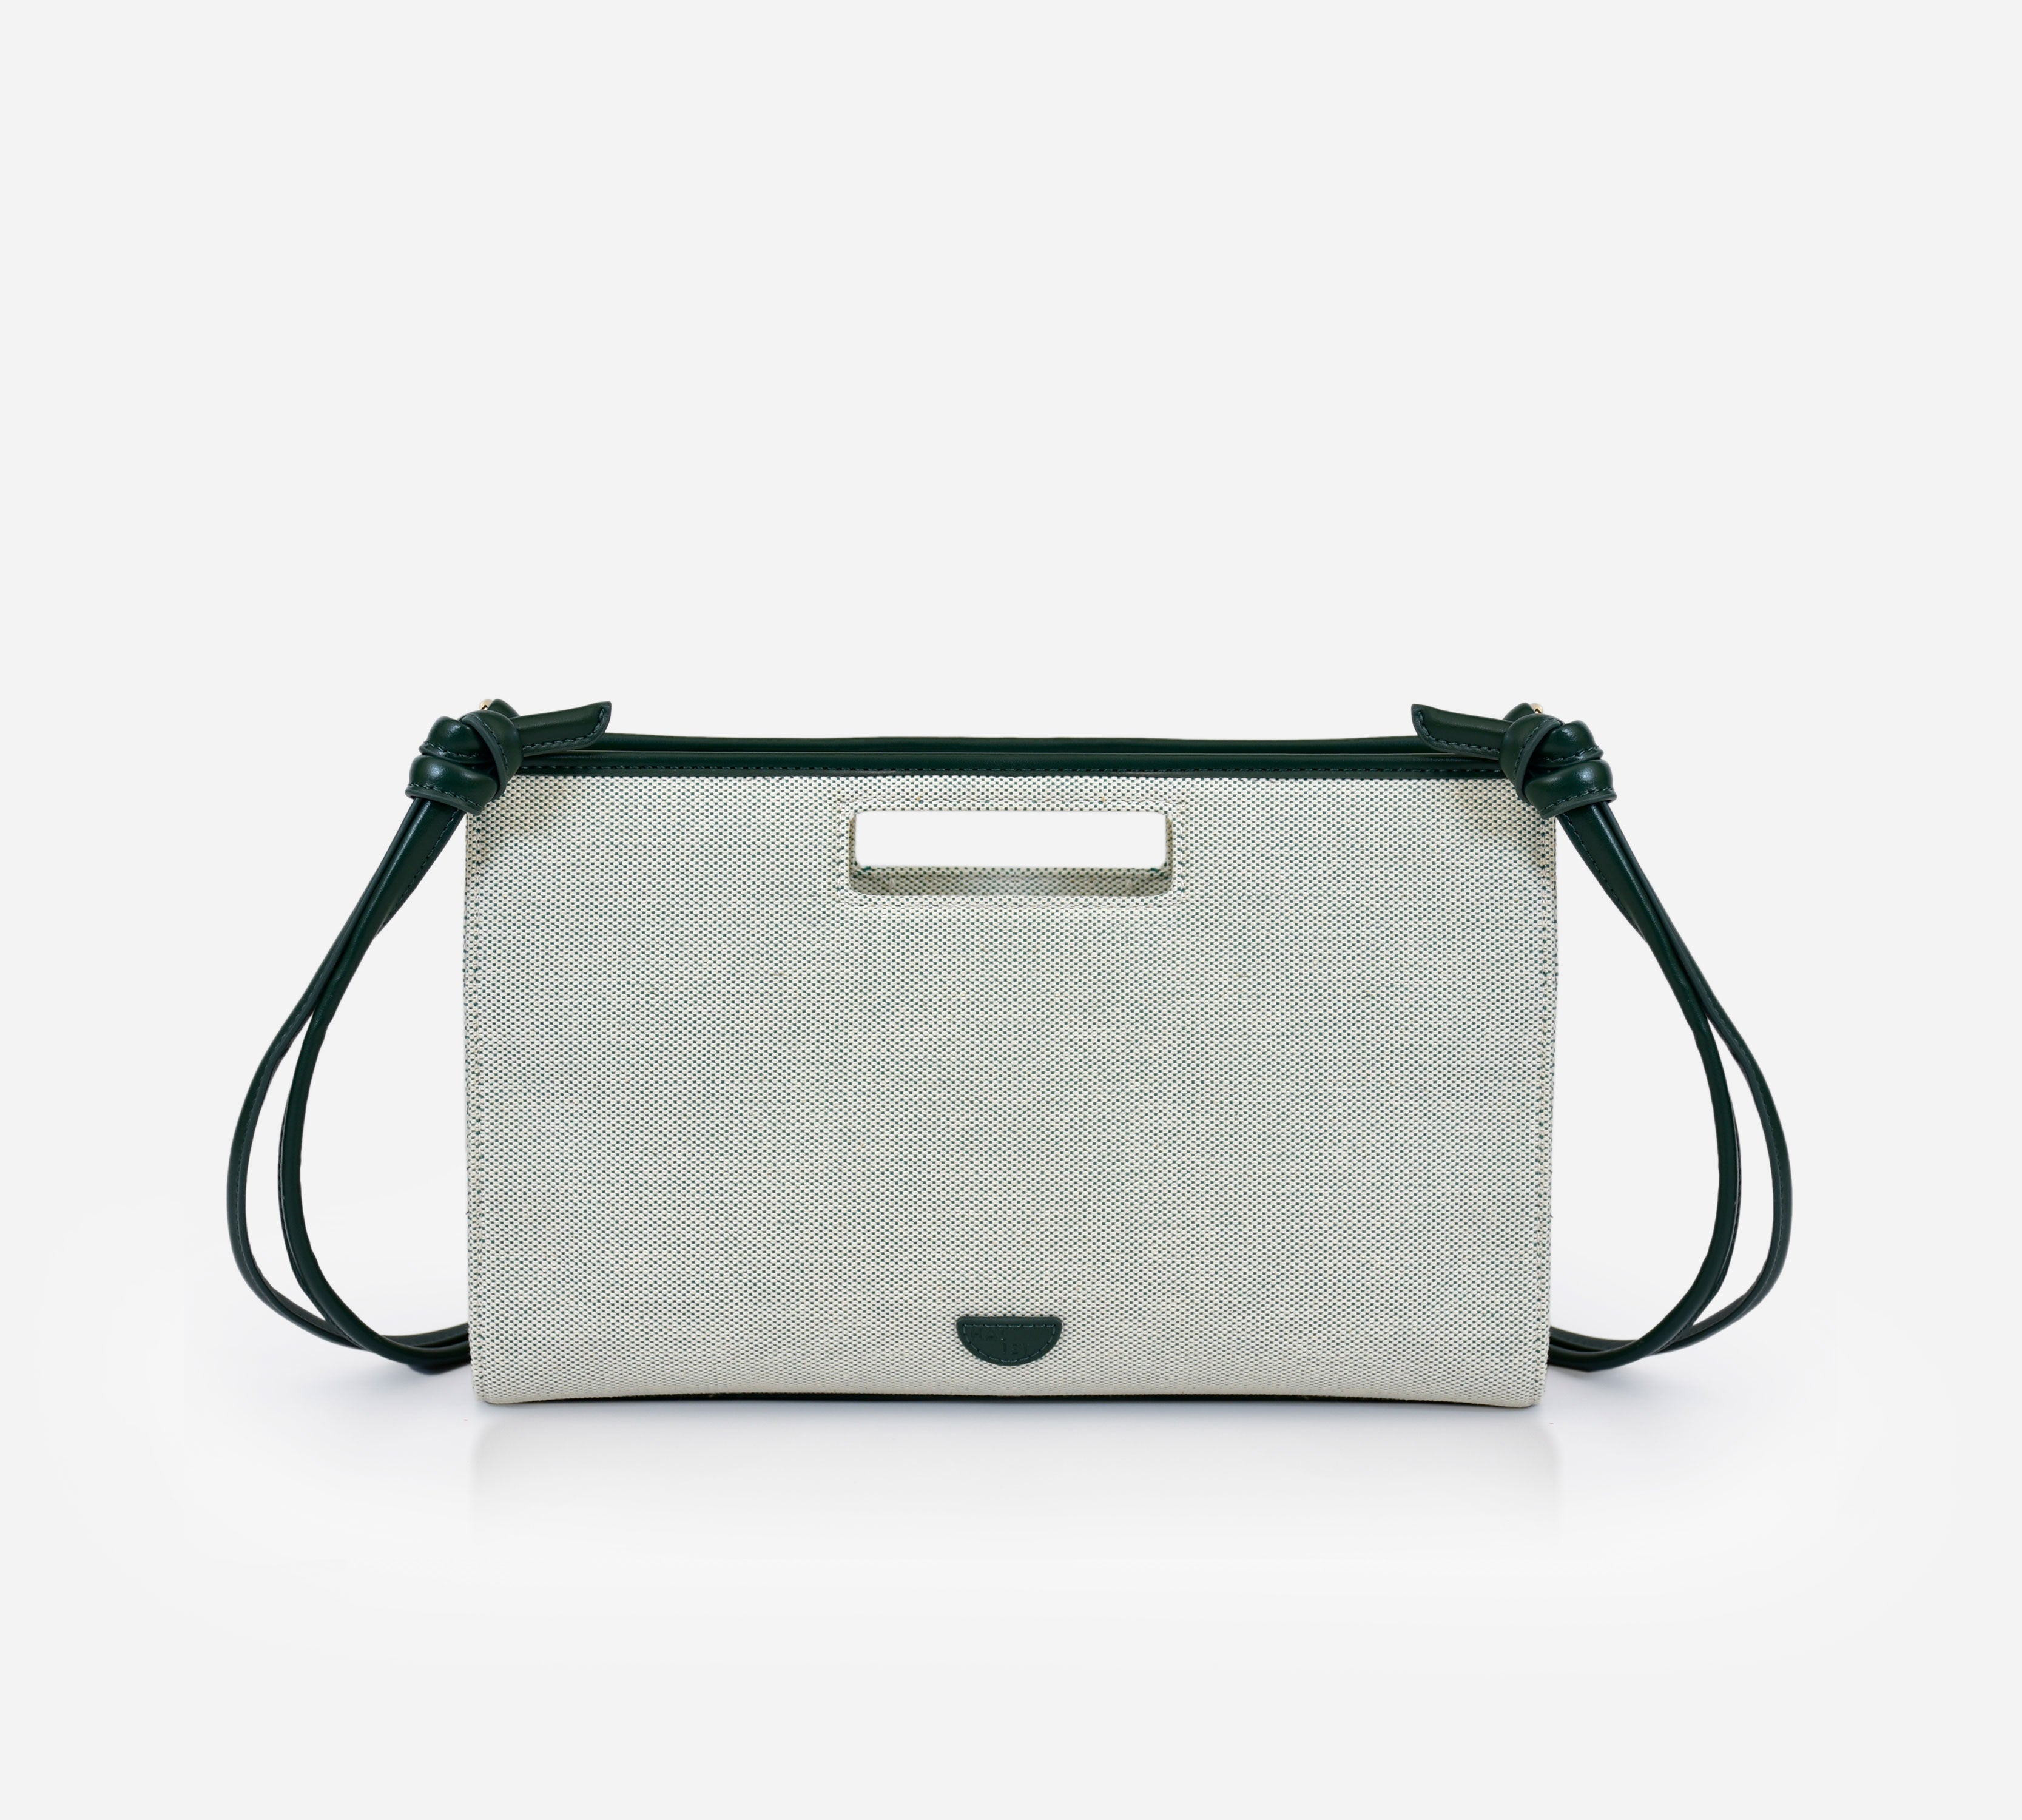 Lana bag in kale green colour. Canvas leather handbag. Clutch it or sling it. Waterproof canvas, genuine leather detachable strap, inside lining, gold hardware, inside and back compartments.